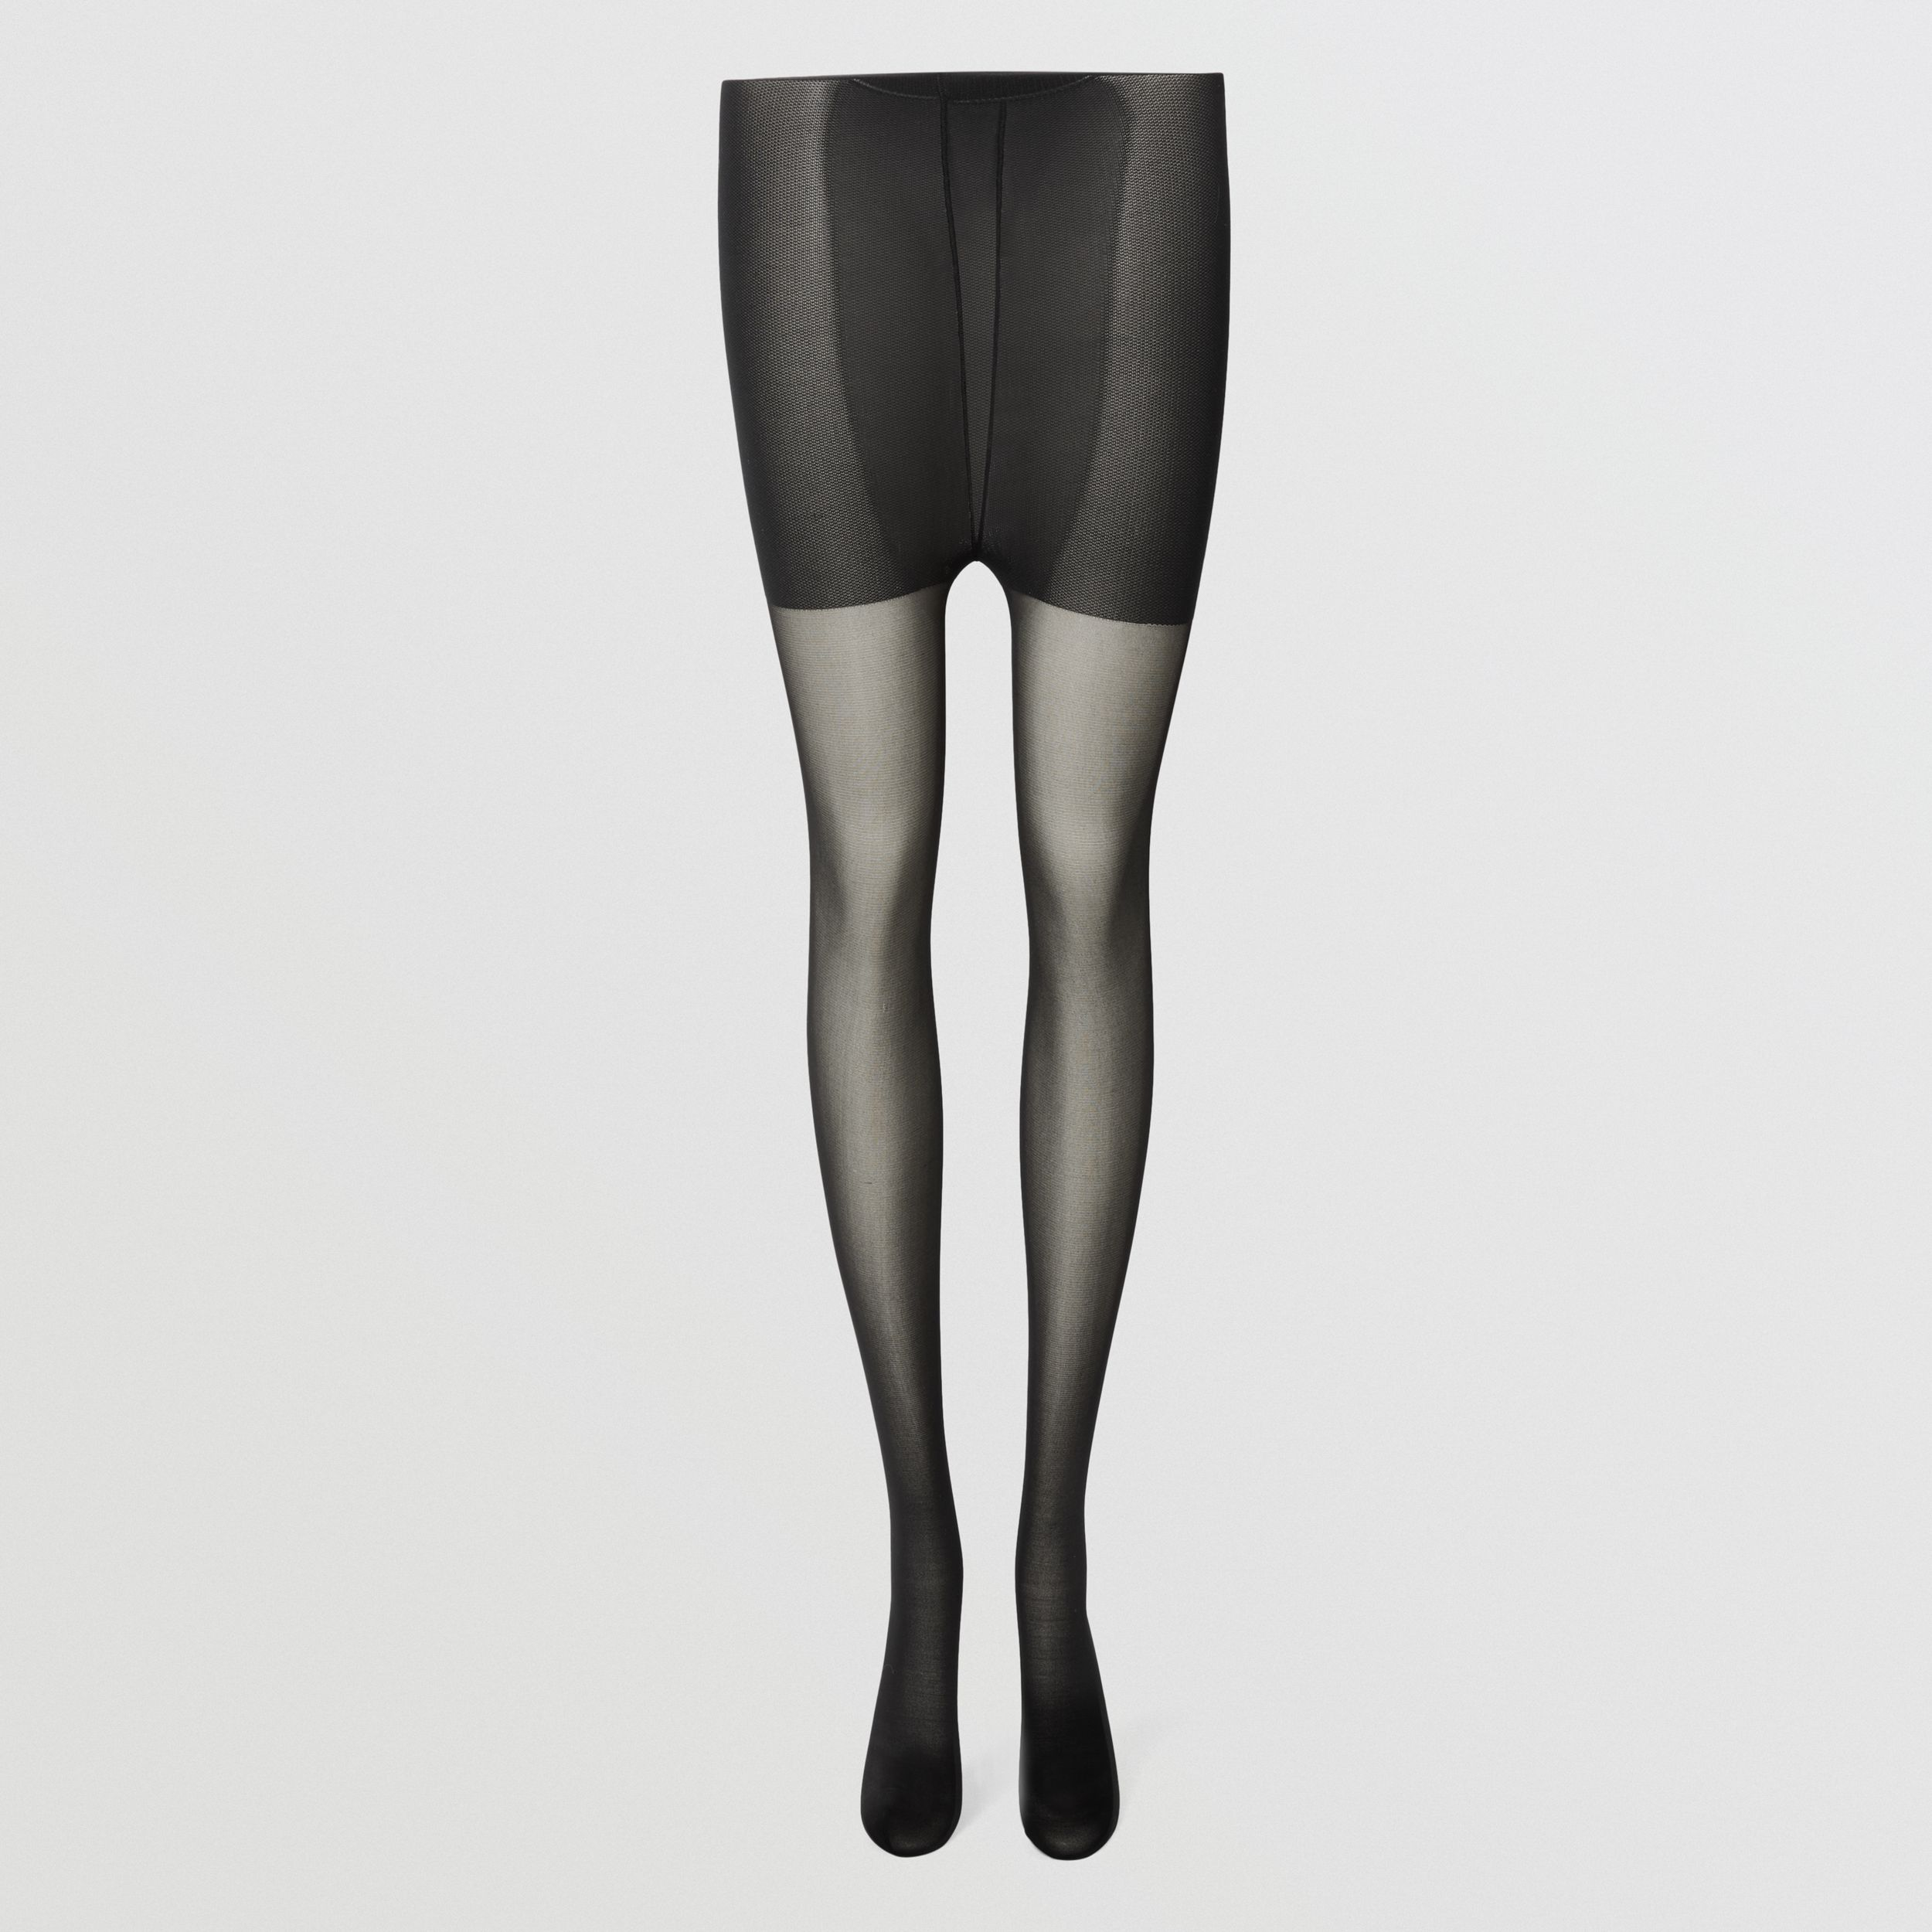 Crystal Monogram Motif Seamed Tights in Black | Burberry - 1